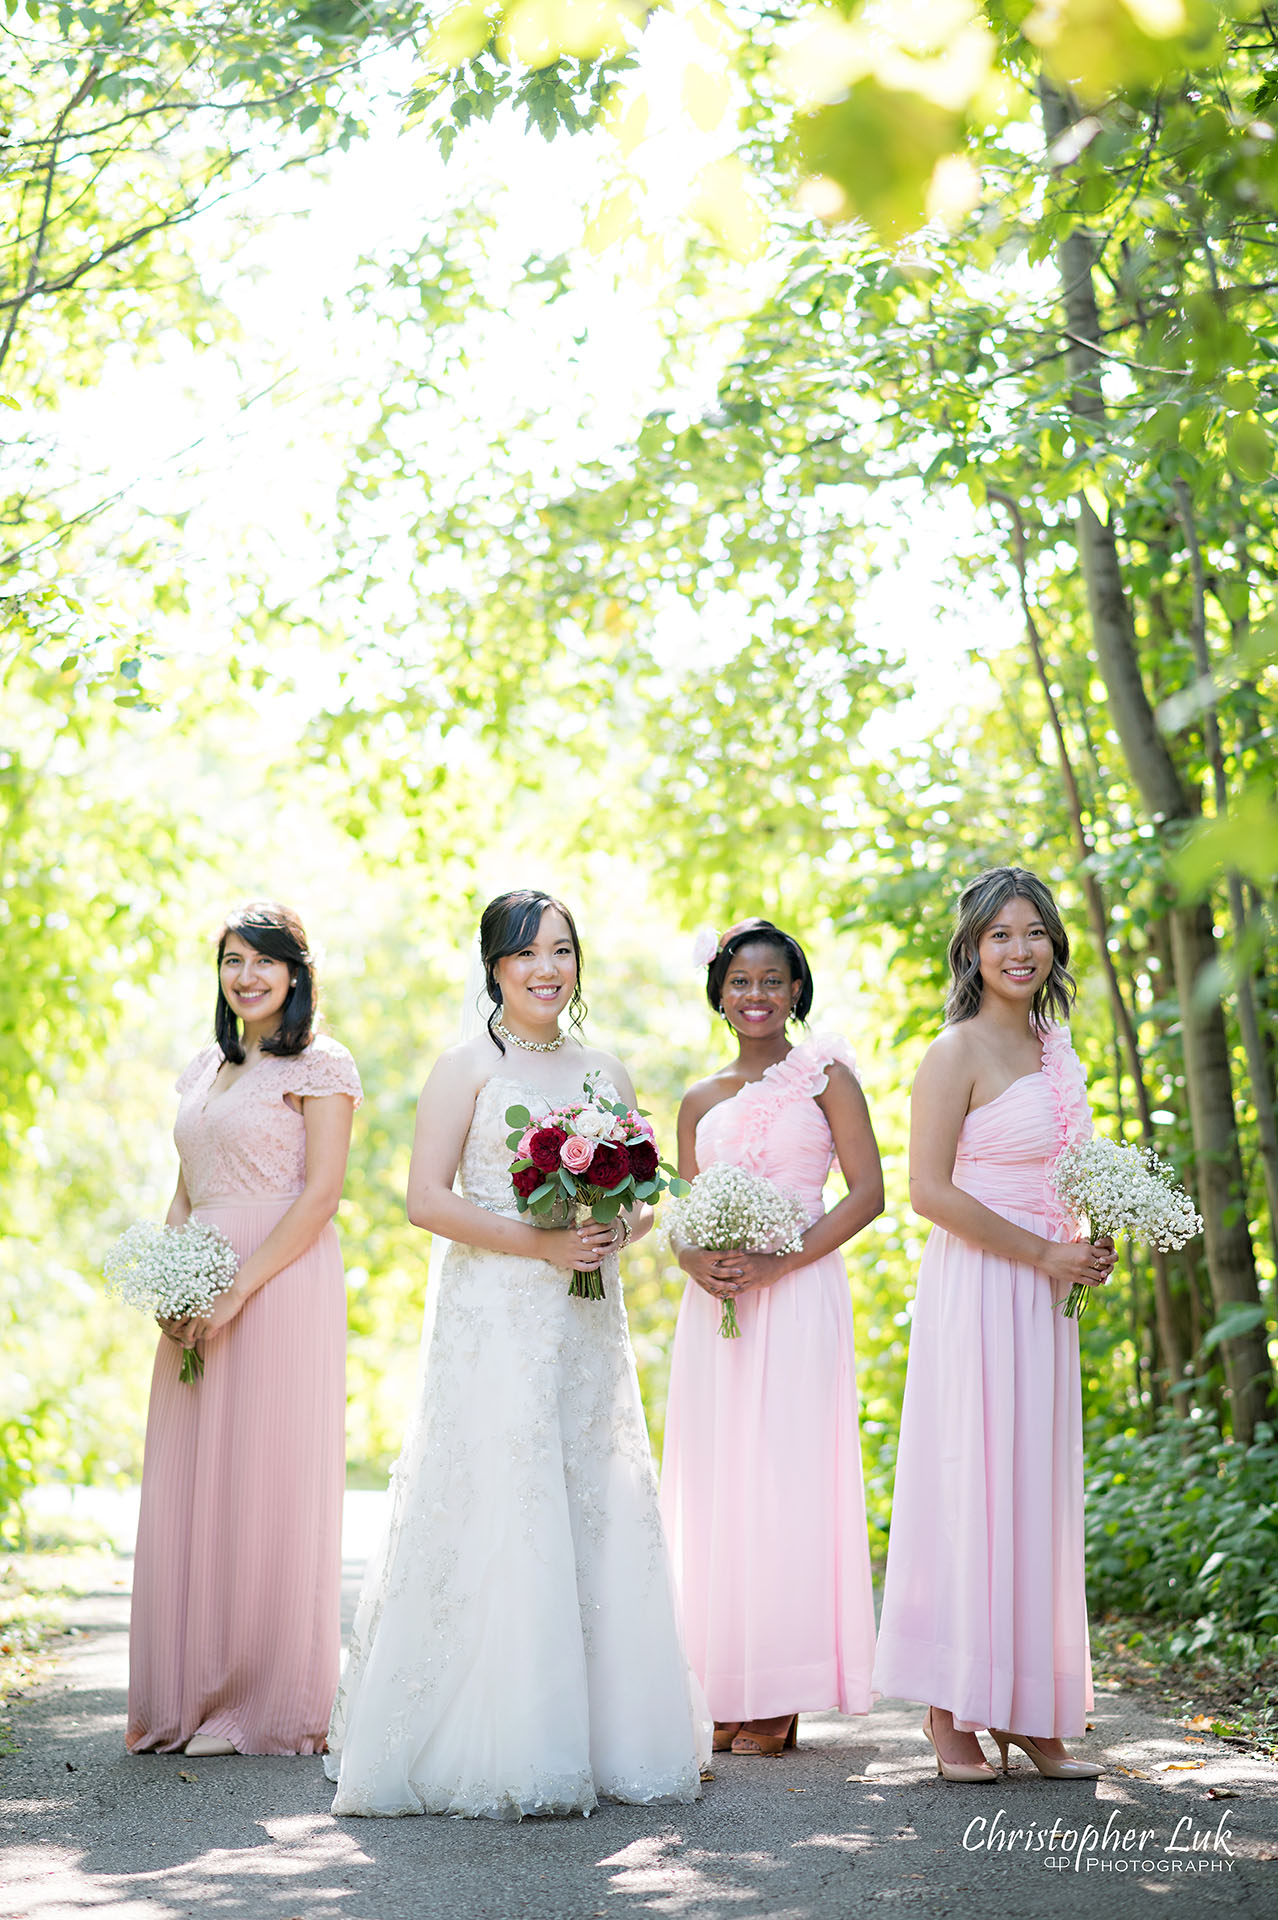 Christopher Luk Toronto Wedding Photographer Bridle Trail Baptist Church Unionville Main Street Crystal Fountain Event Venue Bride Groom Natural Photojournalistic Candid Creative Portrait Session Pictures Bridal Party Maid of Honour Bridesmaids Forest Smile Vertical